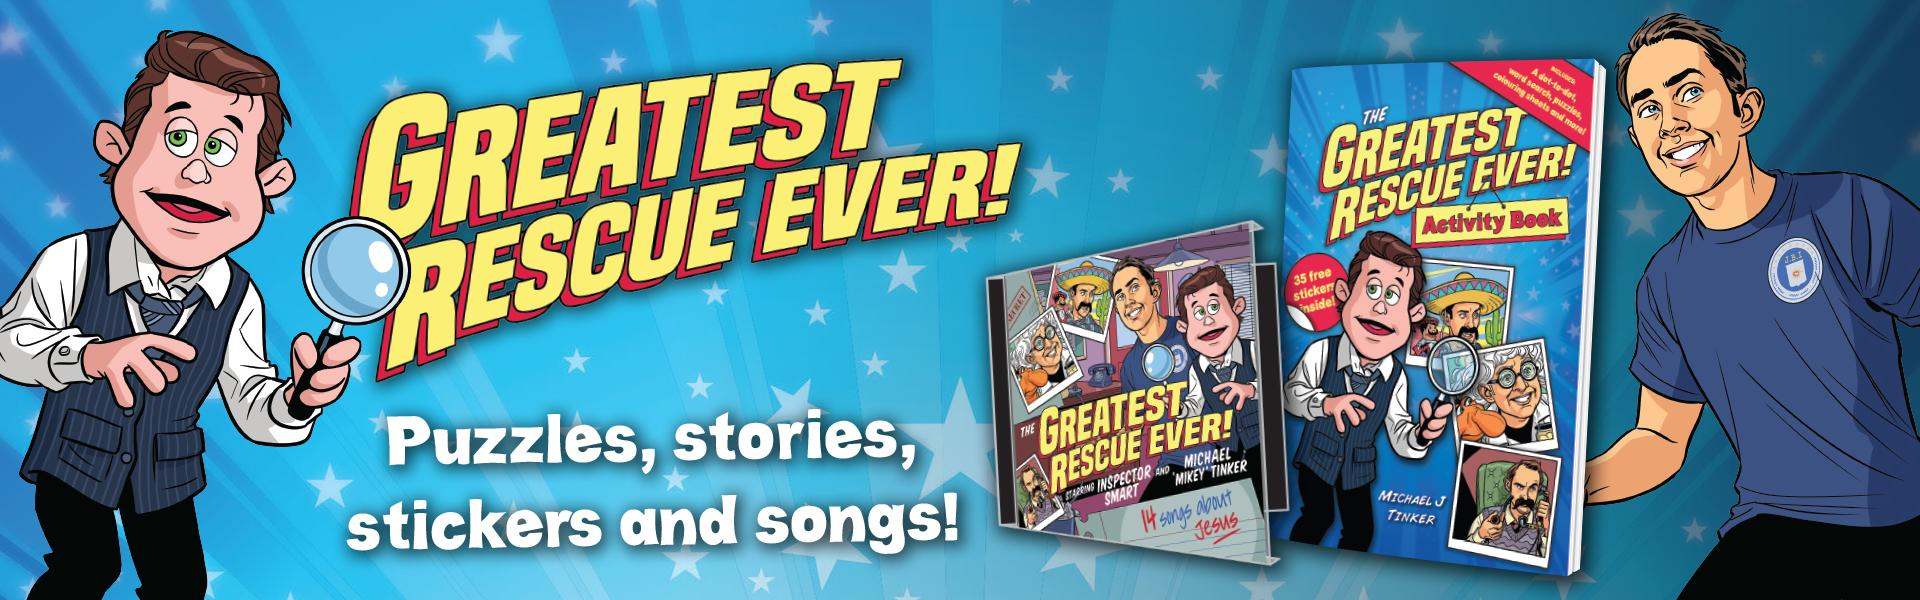 Greatest Rescue Ever Sticker Book